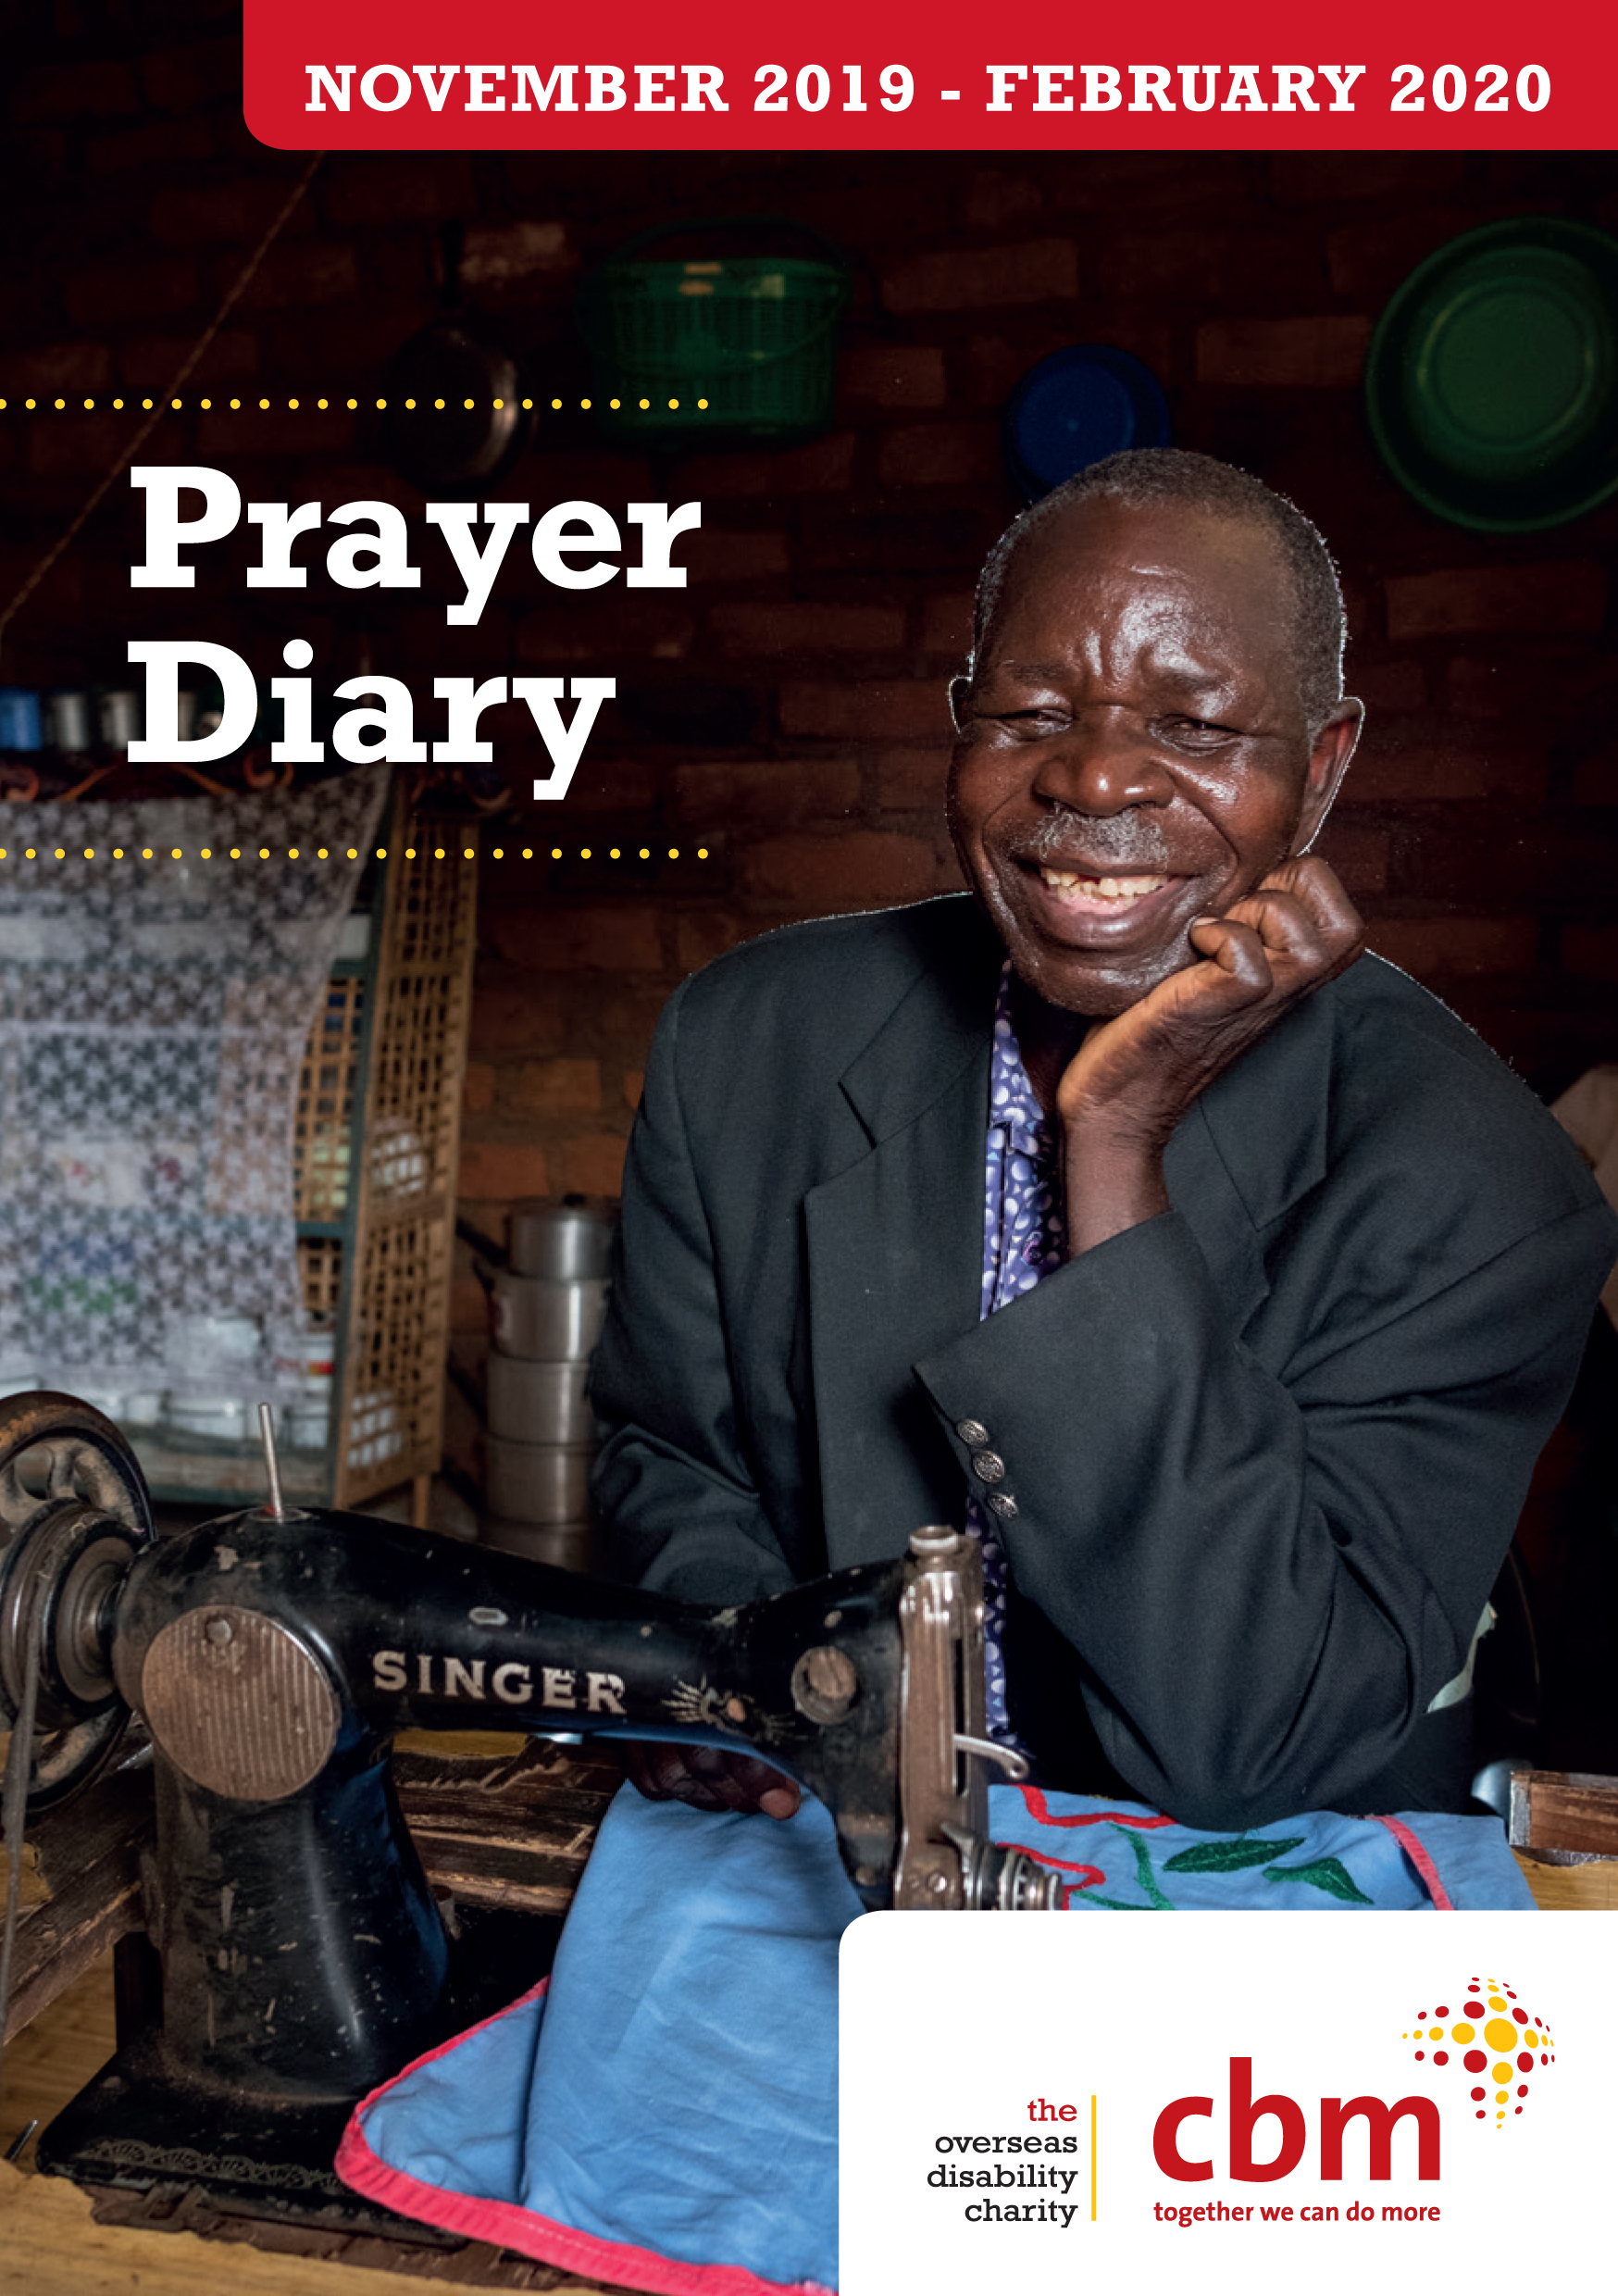 Front cover of the prayer diary nov 2019-feb 2020